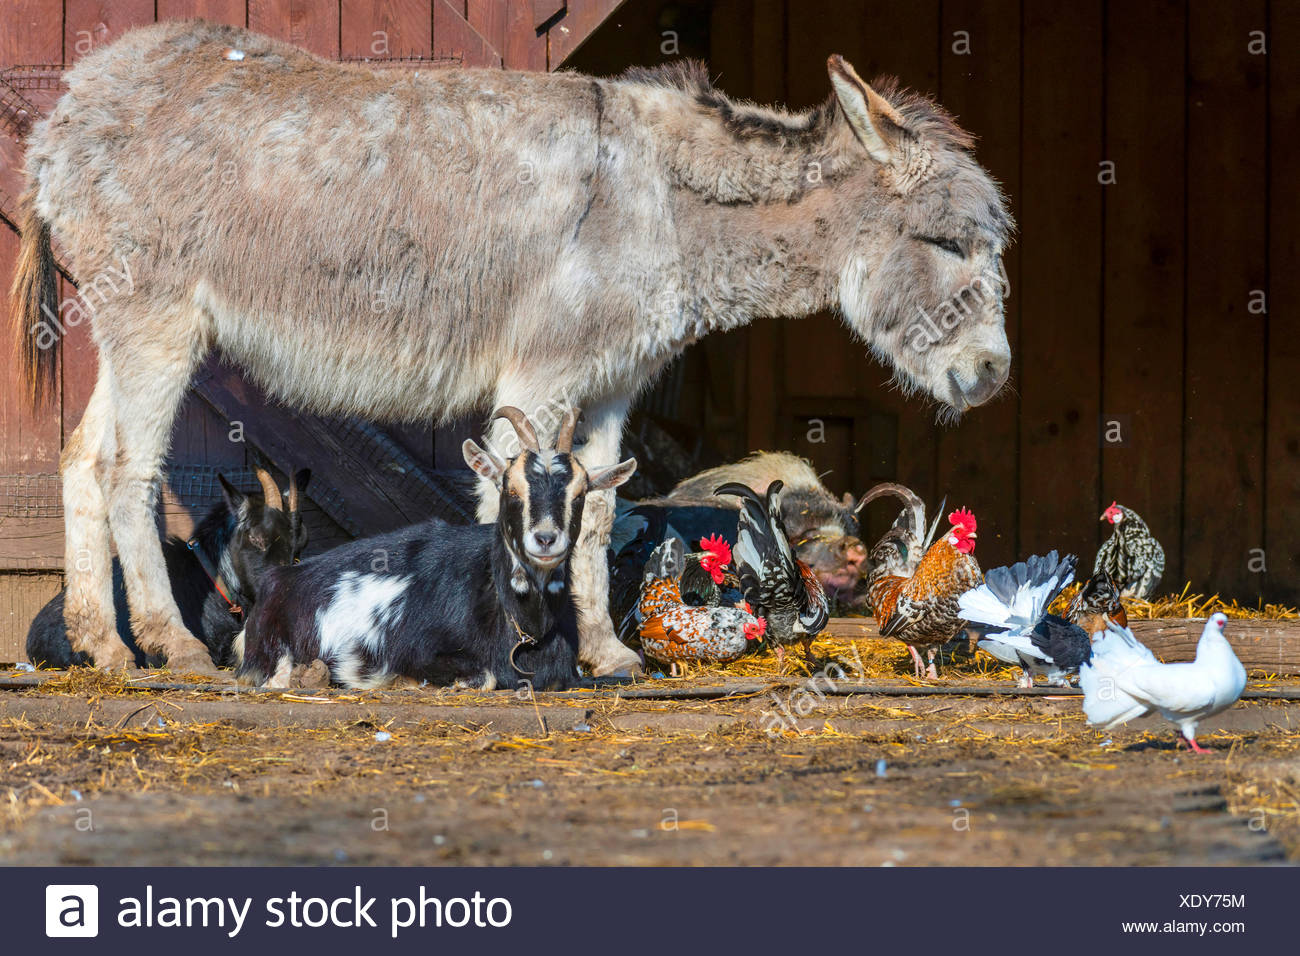 different species of farm animals in an open-air enclosure, Germany, North Rhine-Westphalia - Stock Image